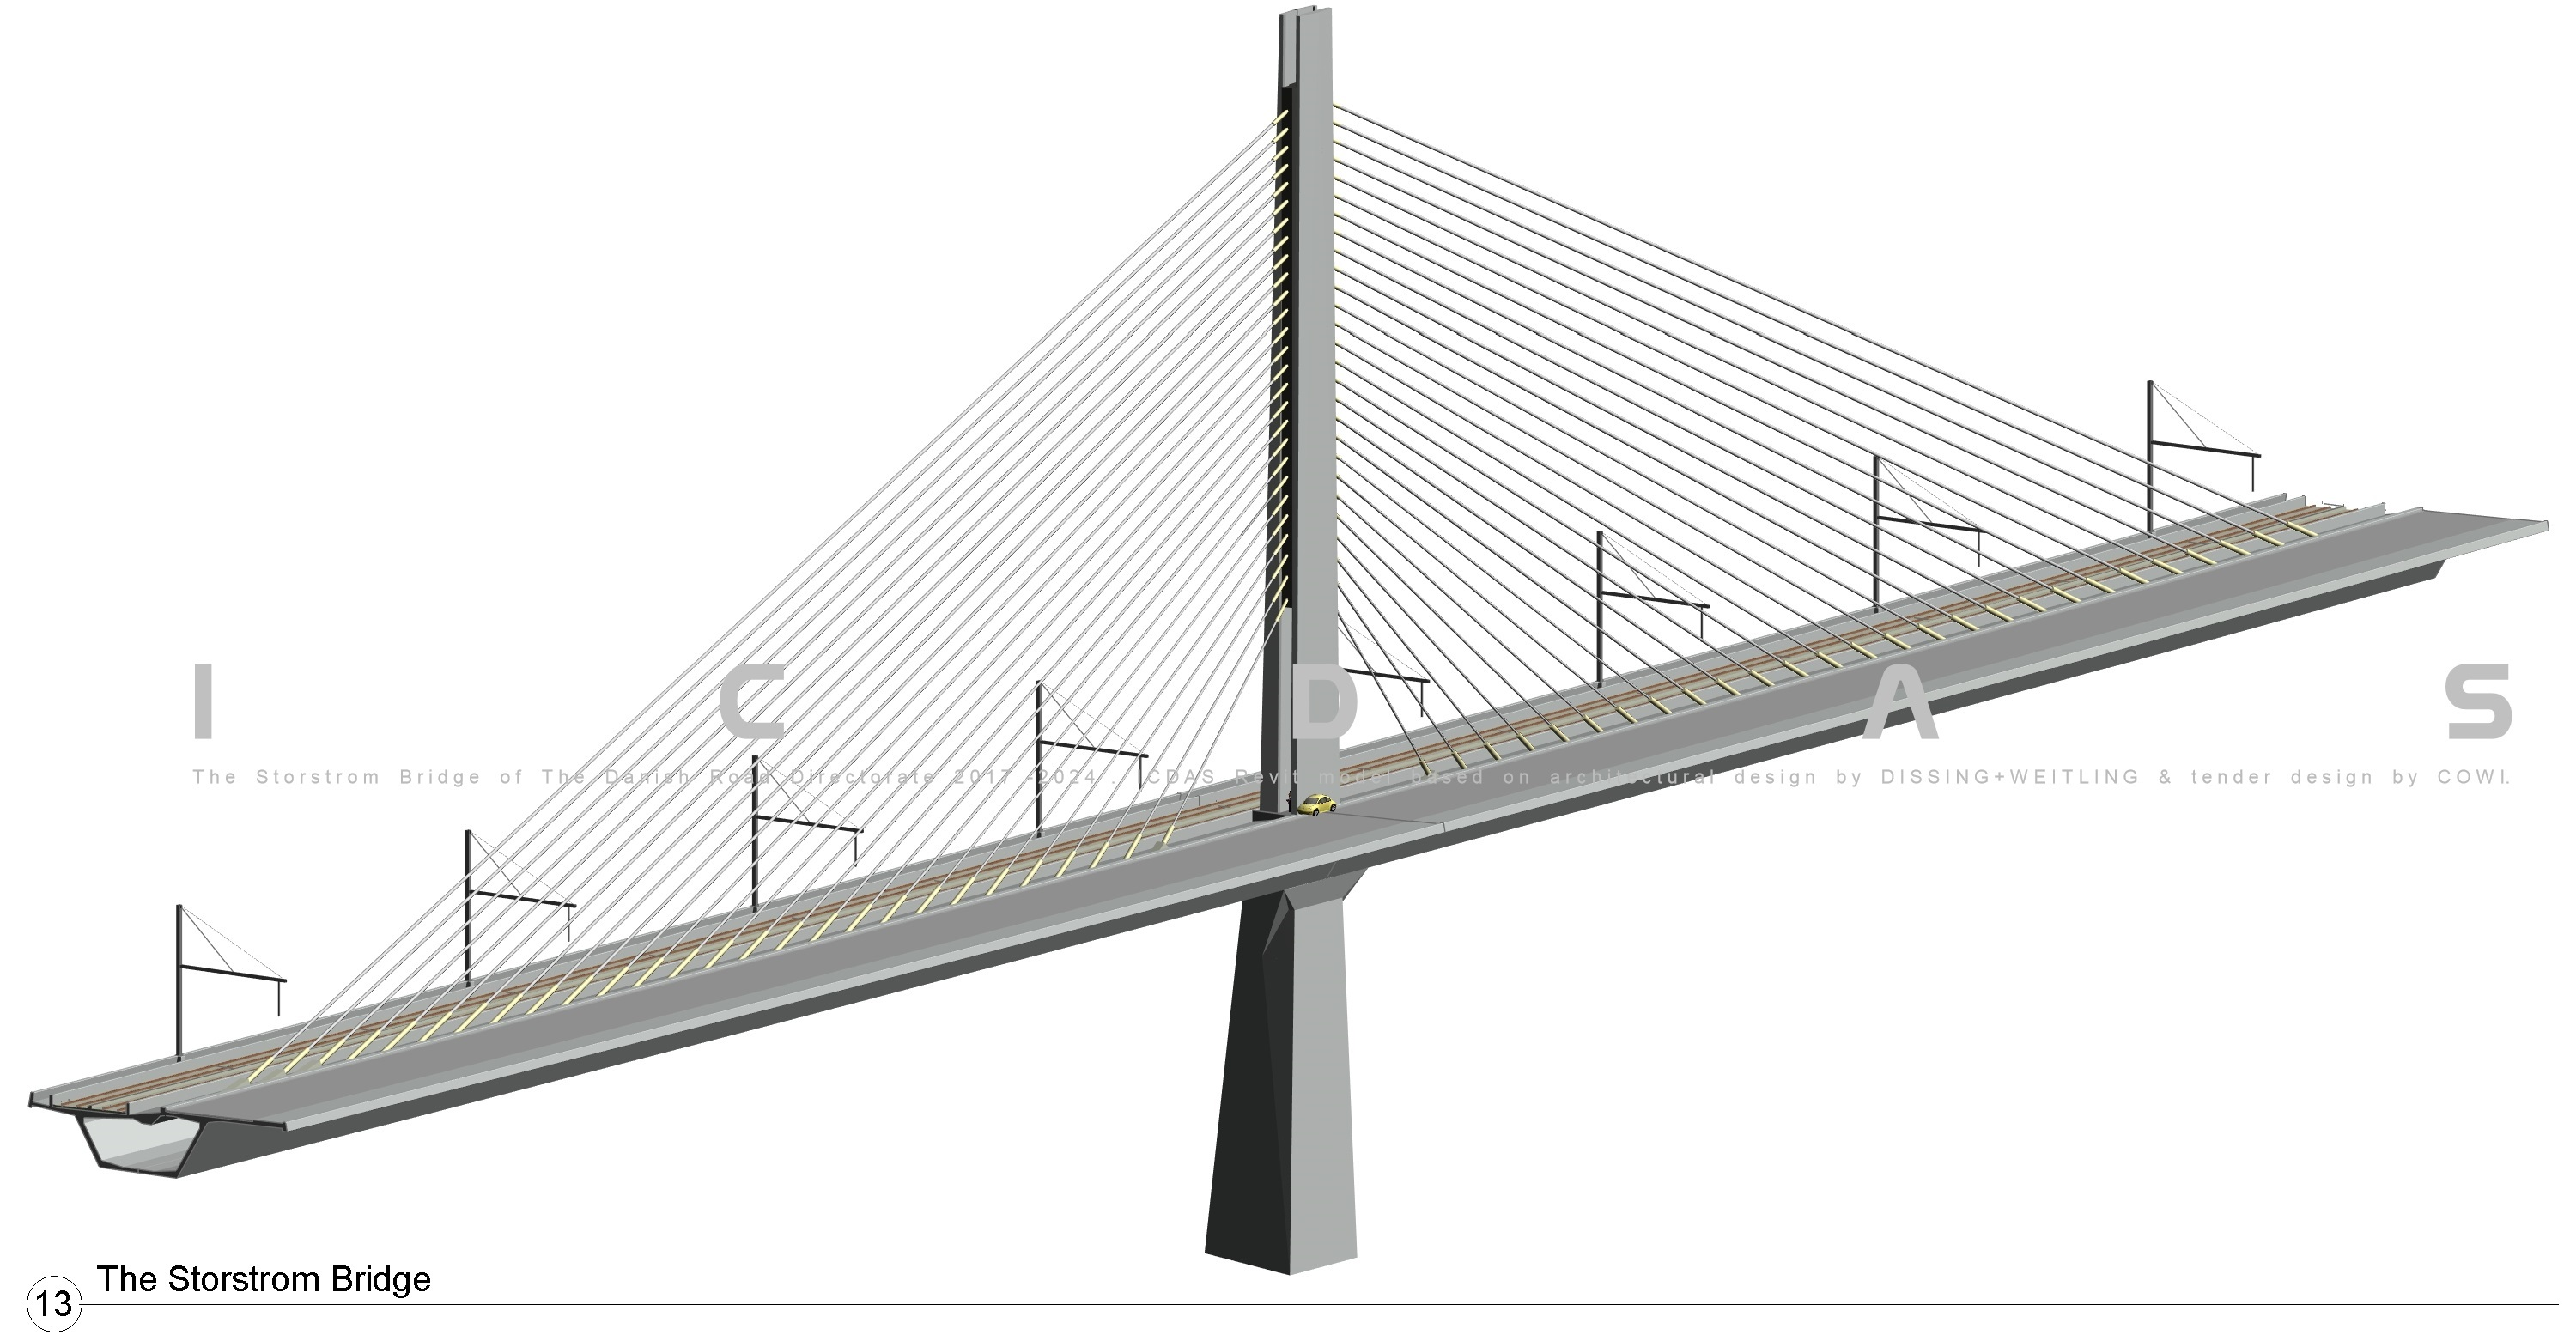 West point bridge design sample bridge - 760 920 And 1080 Icdas Revit Create A Curved 3d Bridge Deck Of 320m From Which Any Cross Section Can Be Generated For The Dimensions